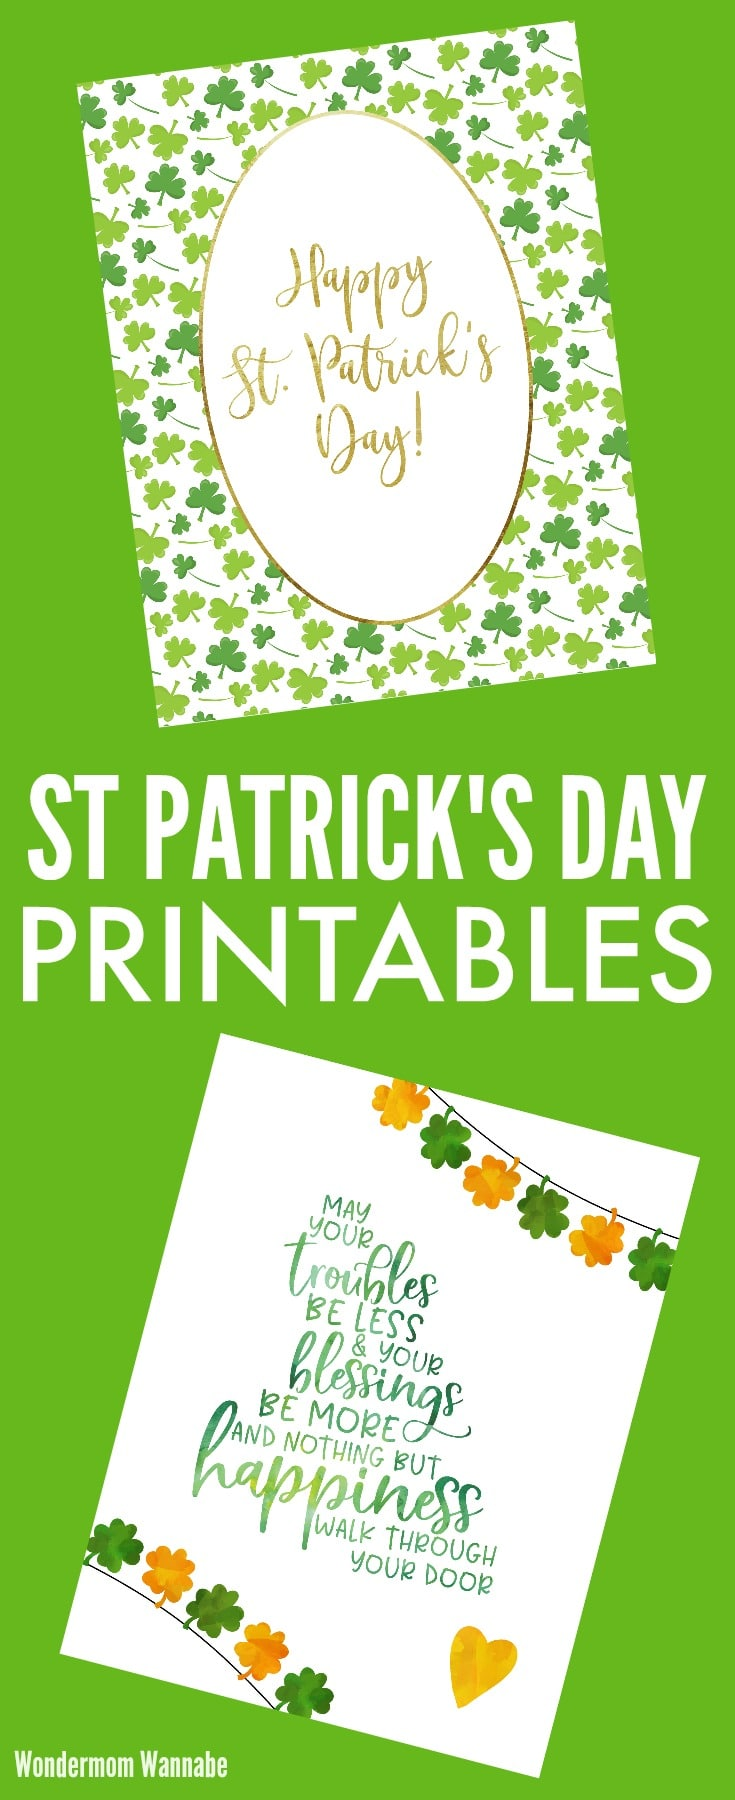 Two cheerful and festive St Patrick's Day printables #StPatricksDay #printables